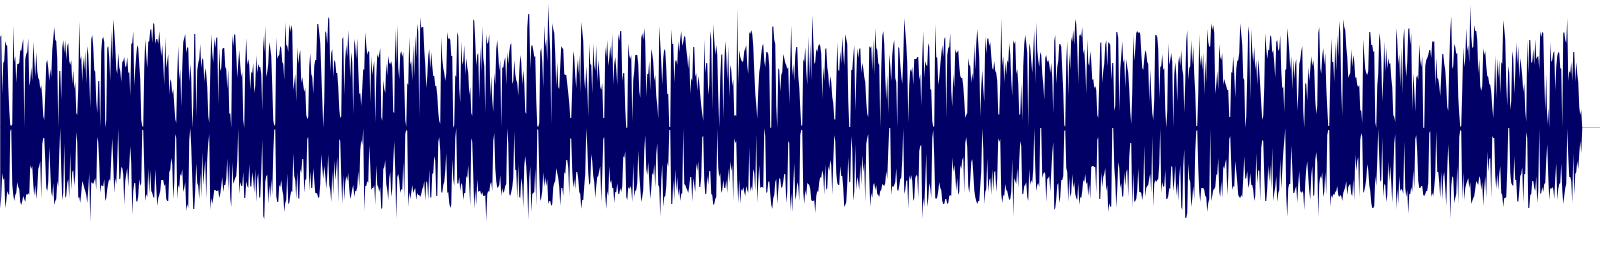 waveform of track #146425